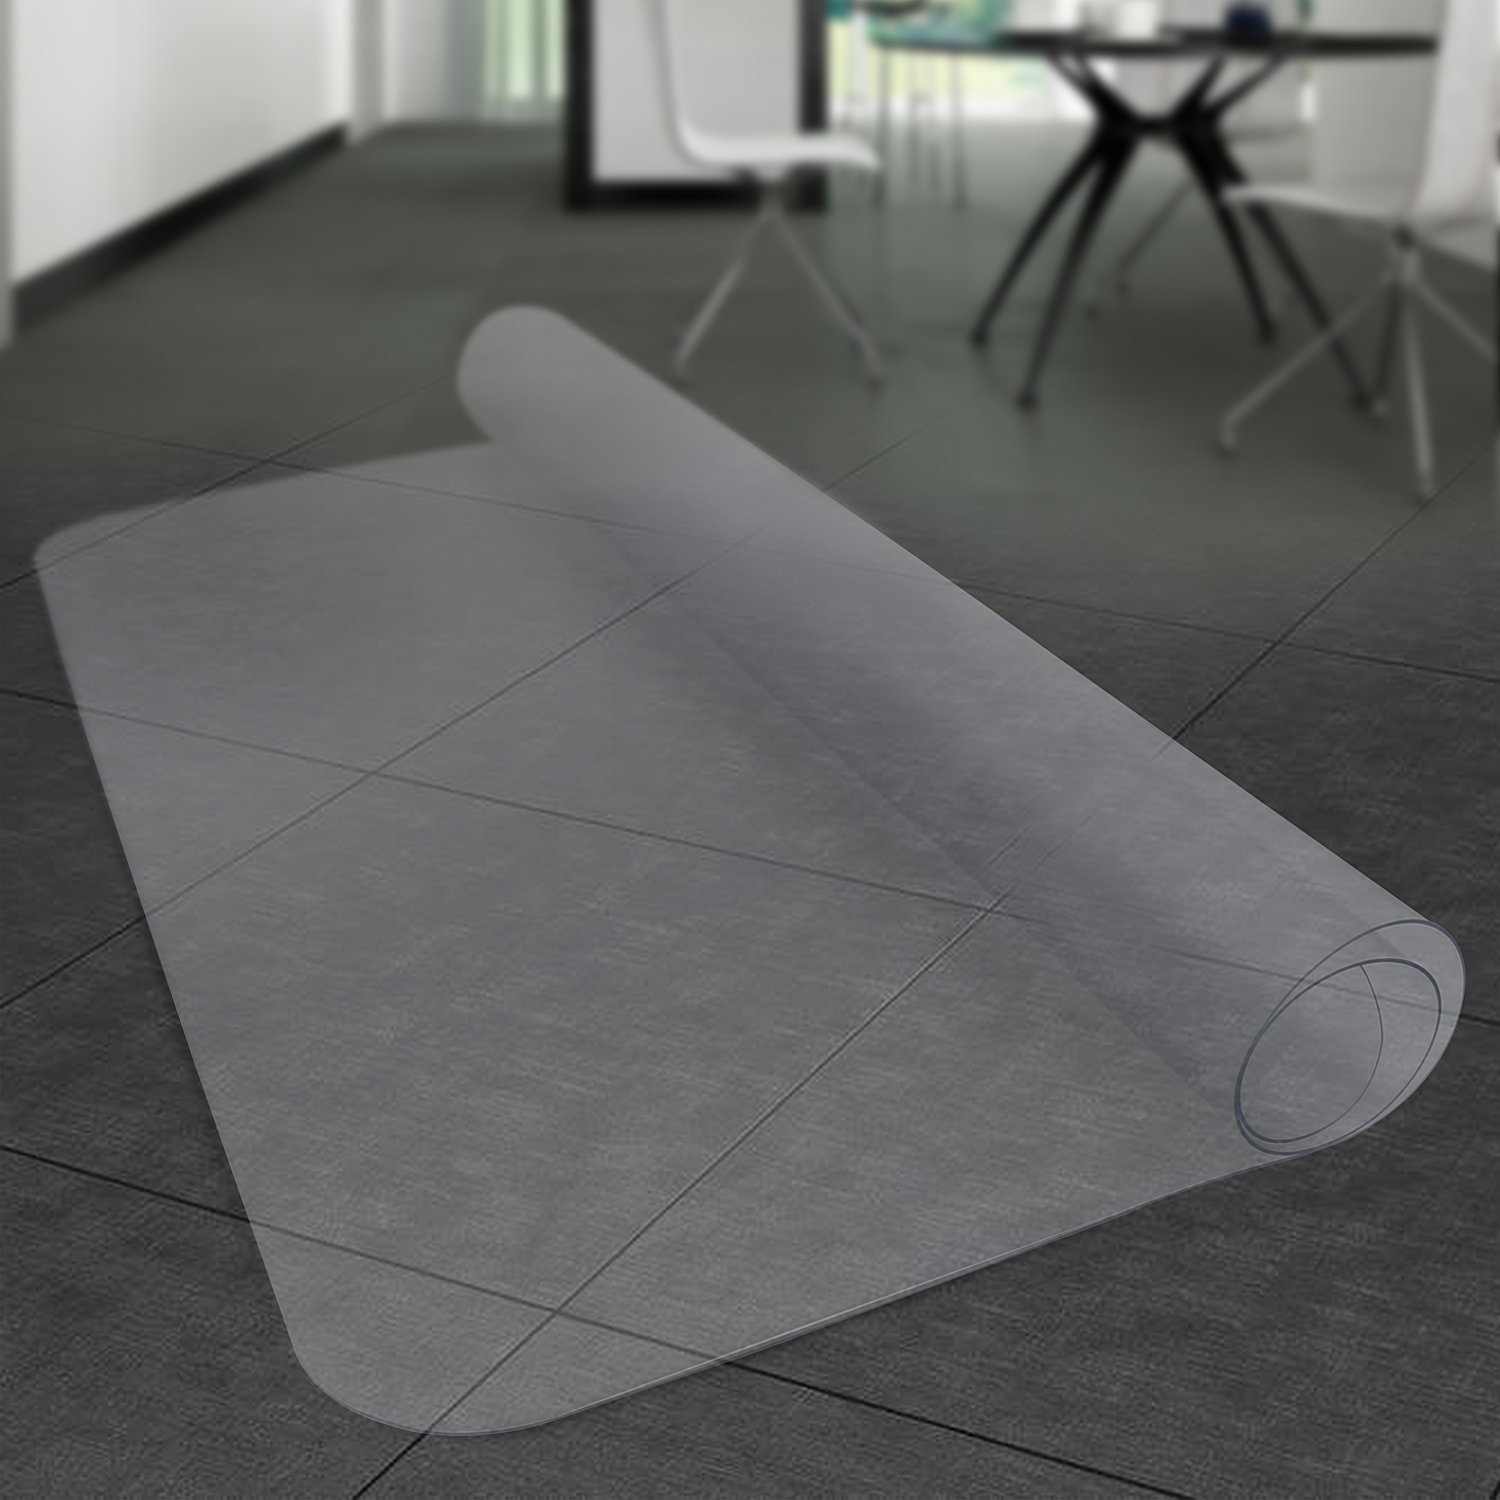 MATDOM Office Chair Mat for Hardwood Floor,48''×36'' Great Clear Vinyl Hard Floor Mat with Smooth Surface, Anti-Slip Thick and Sturdy Desk Floor Protective Mats by Matdom